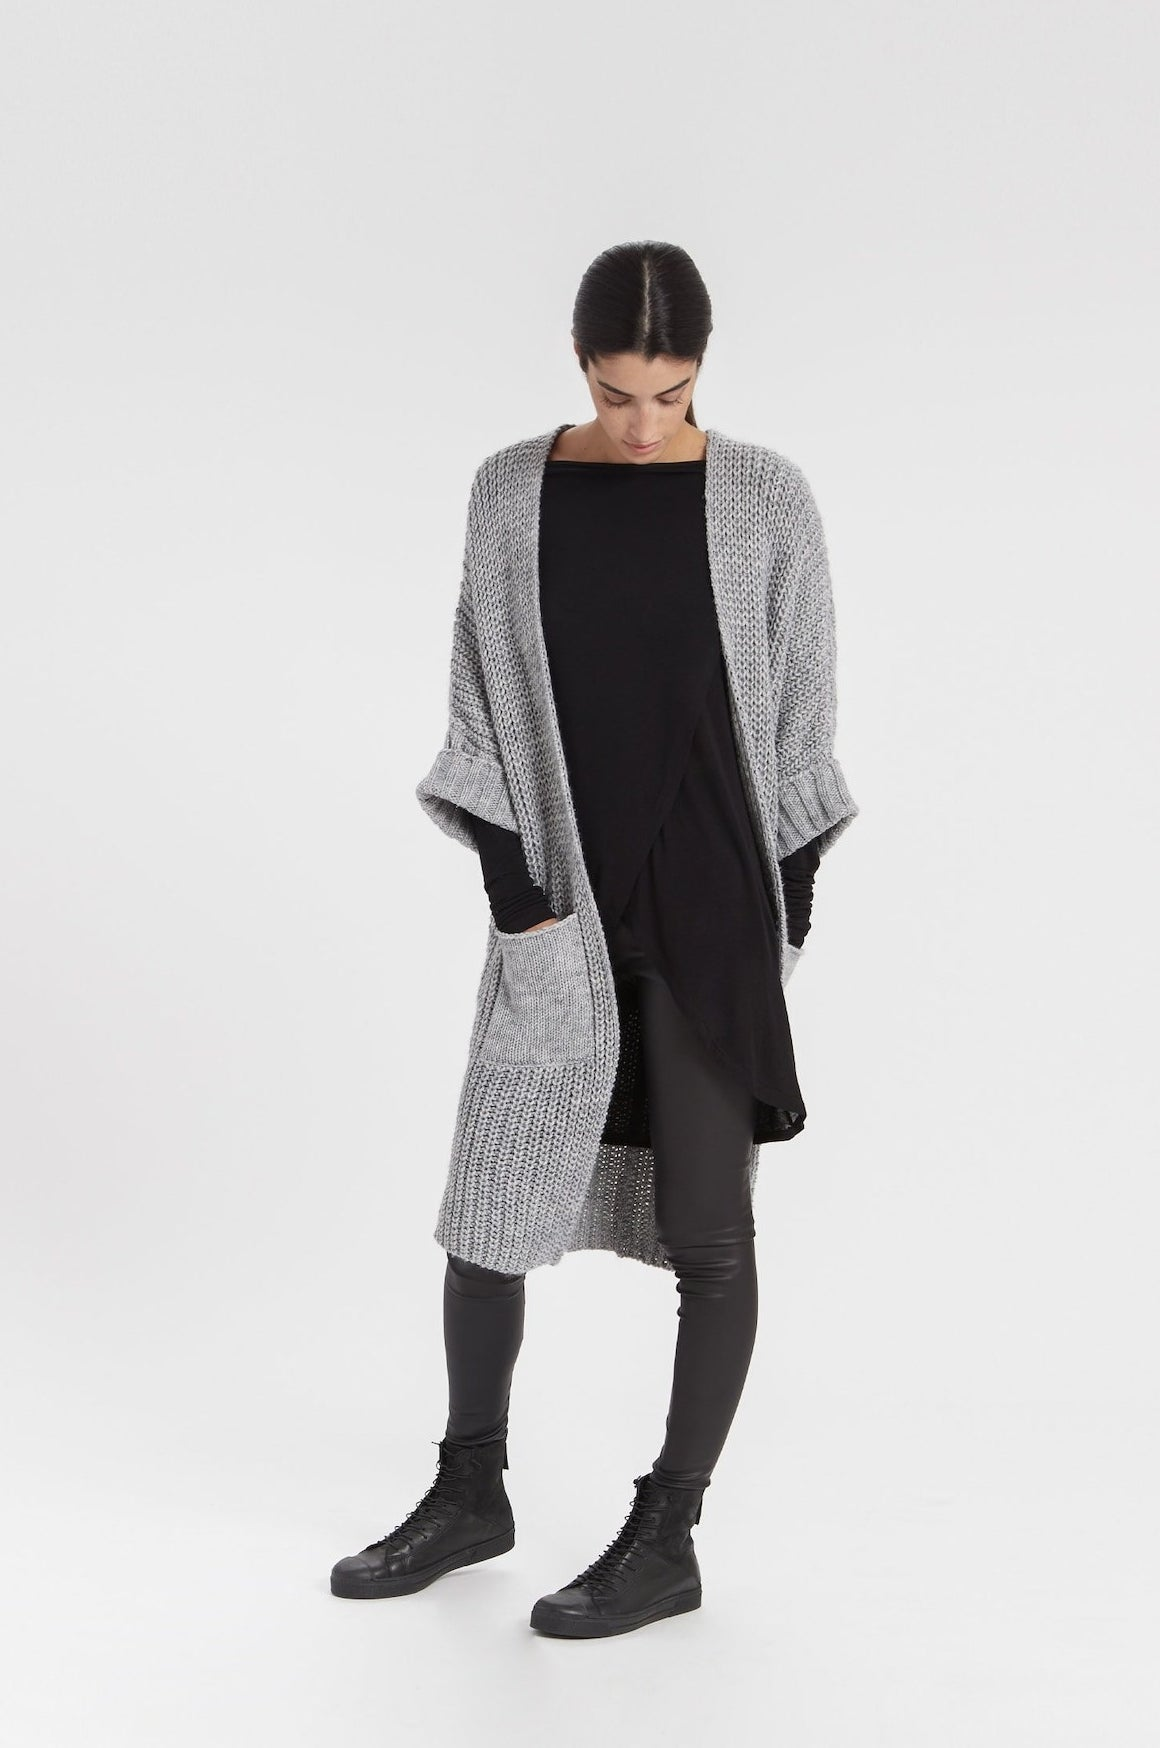 model wearing knee-length short-sleeved knit cardigan with large pockets in grey